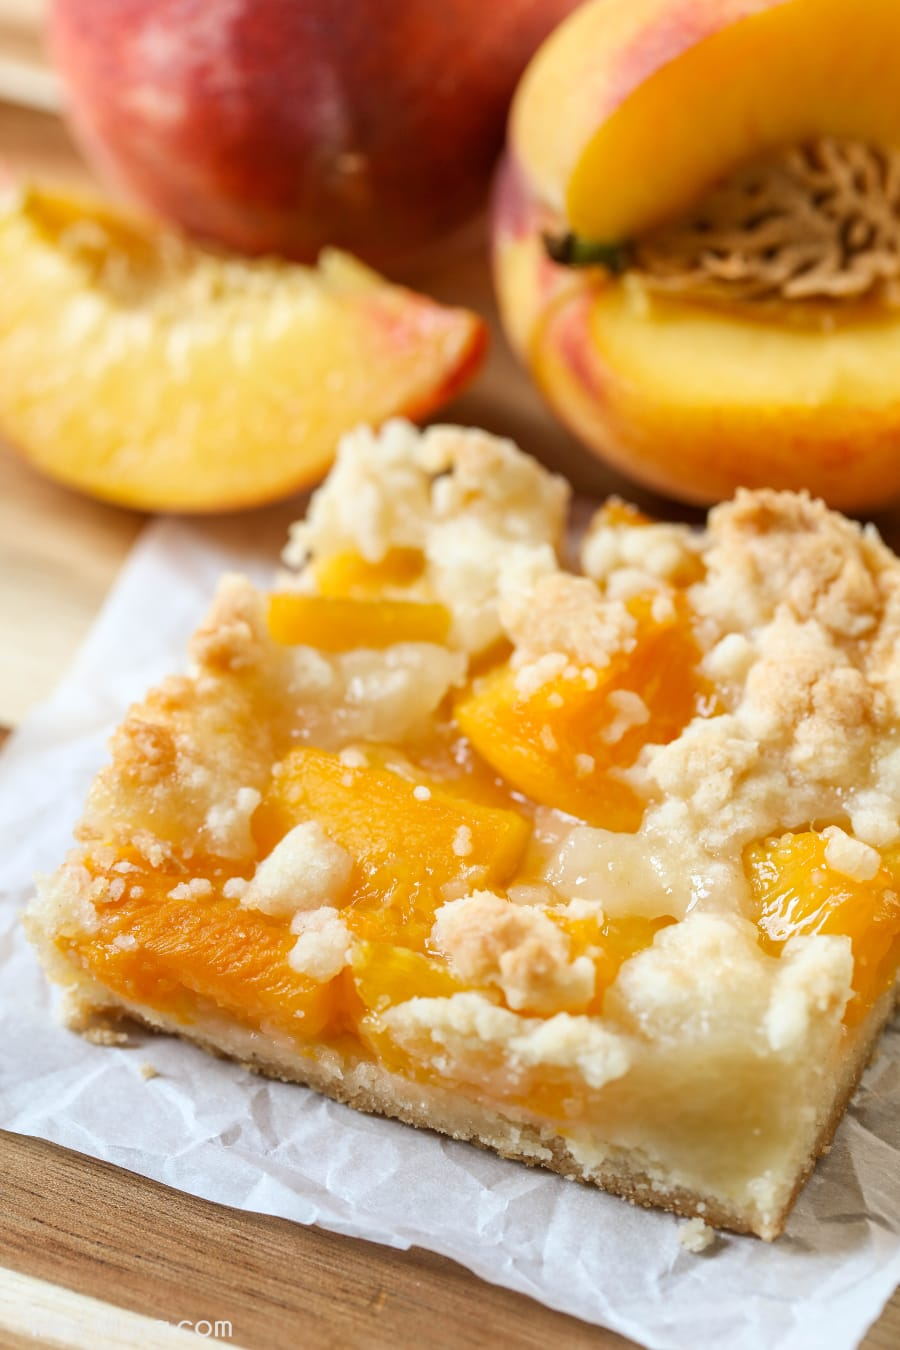 Peach Crumb Bars - a crumbly, soft and delicious bar topped with peaches and batter - perfect for the peach lover in the family!